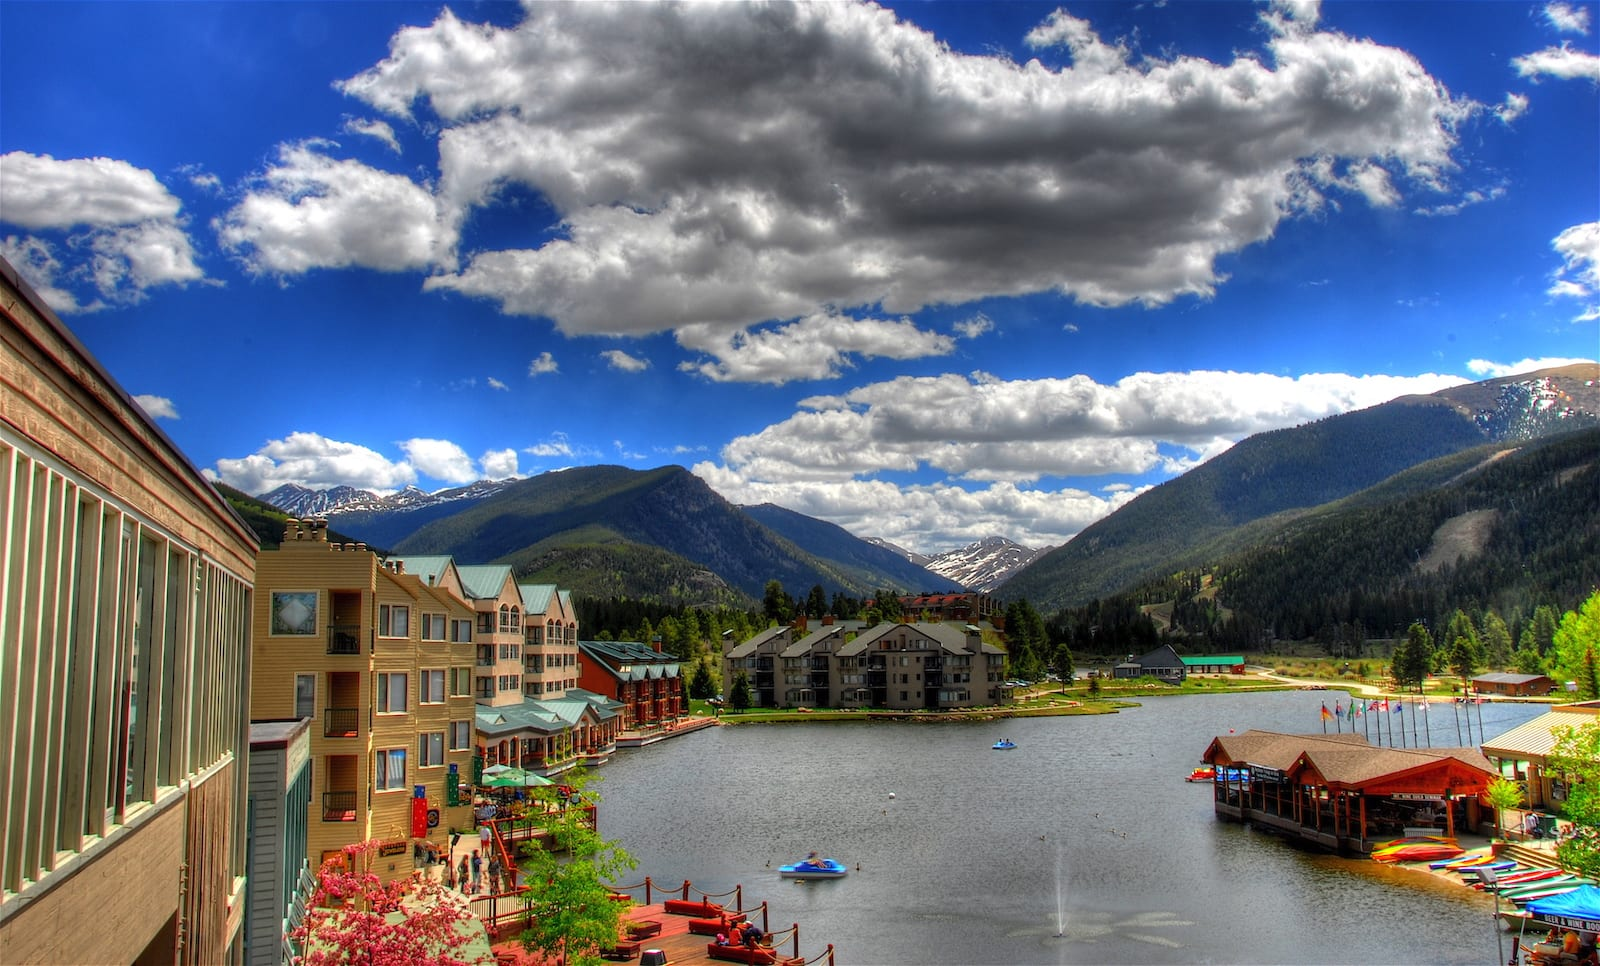 Keystone Lodge, Colorado.